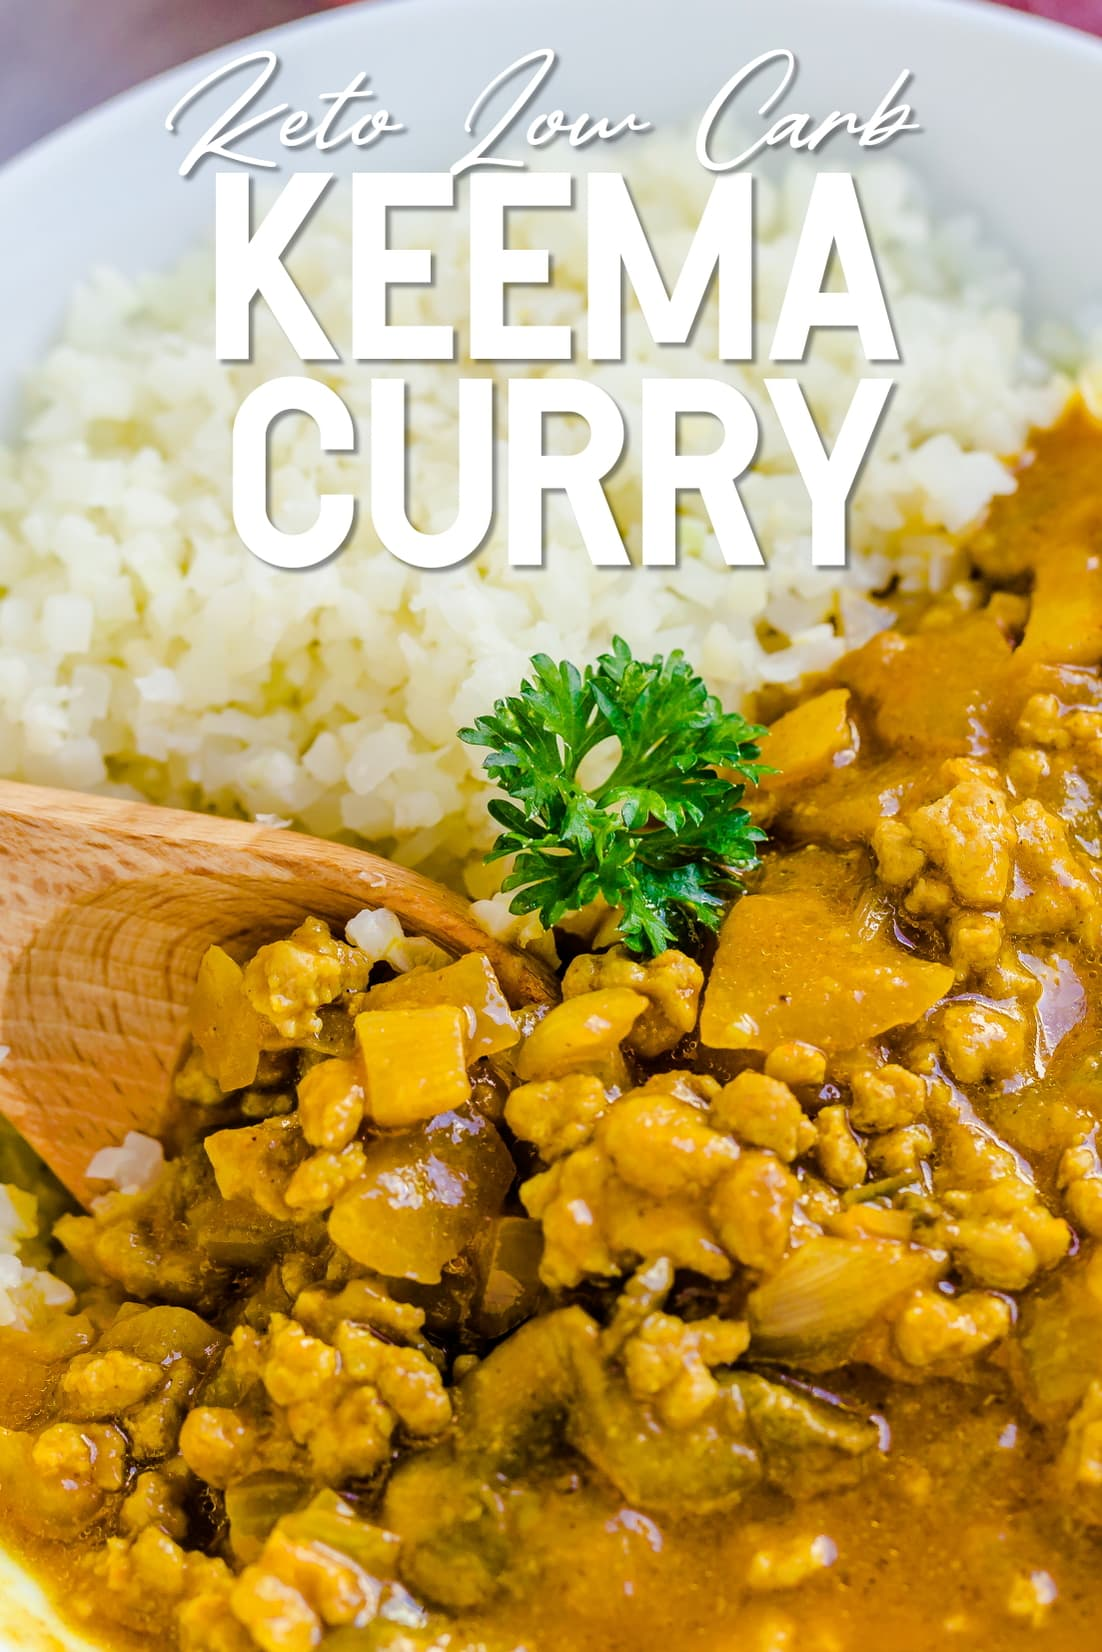 Keto Keema Cauliflower Curry being scooped with a wooden spoon